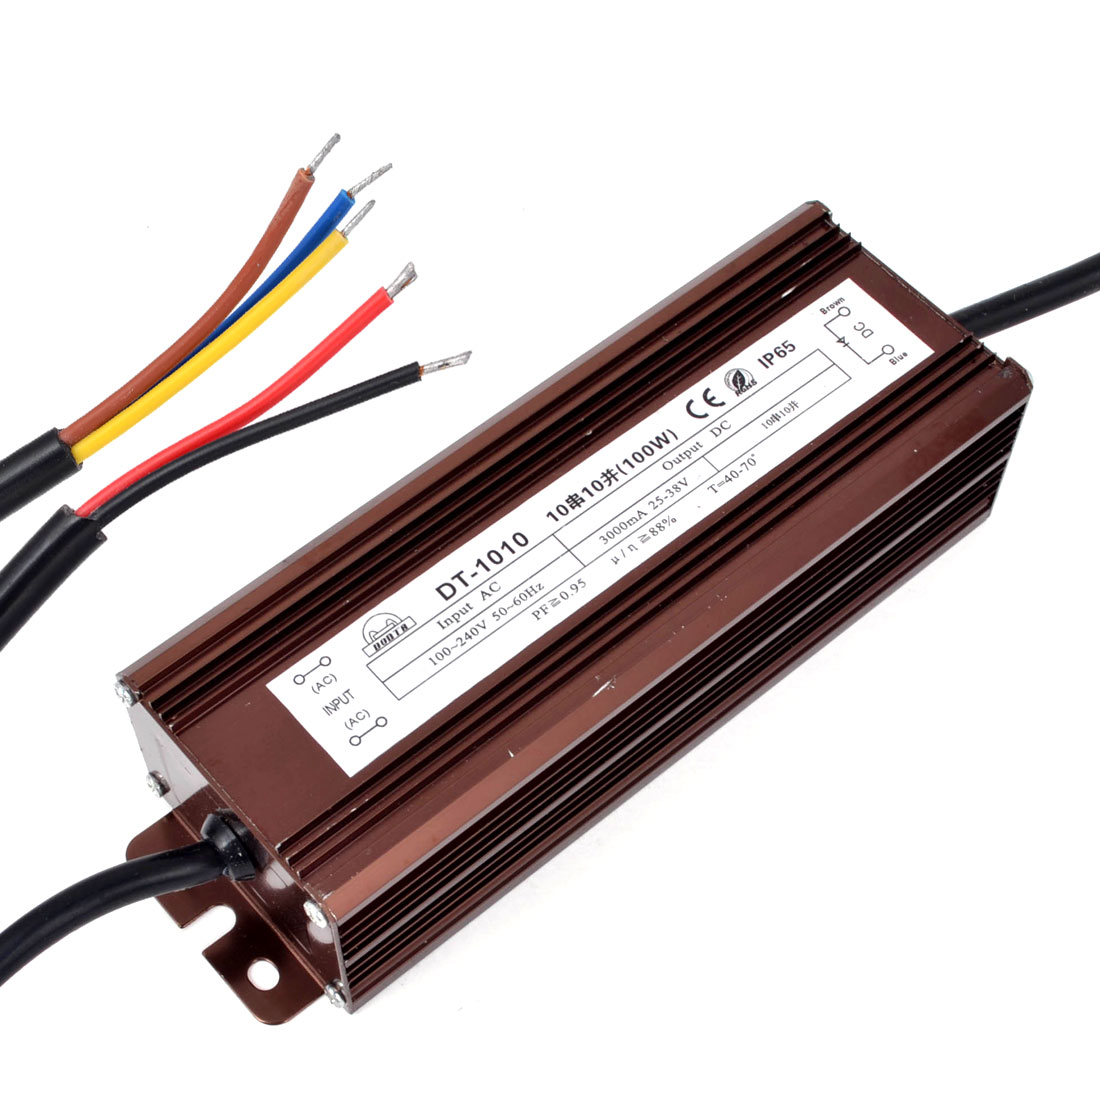 AC 100-240V to DC 25-38V Waterproof LED Driver Transformer Adapter 100W